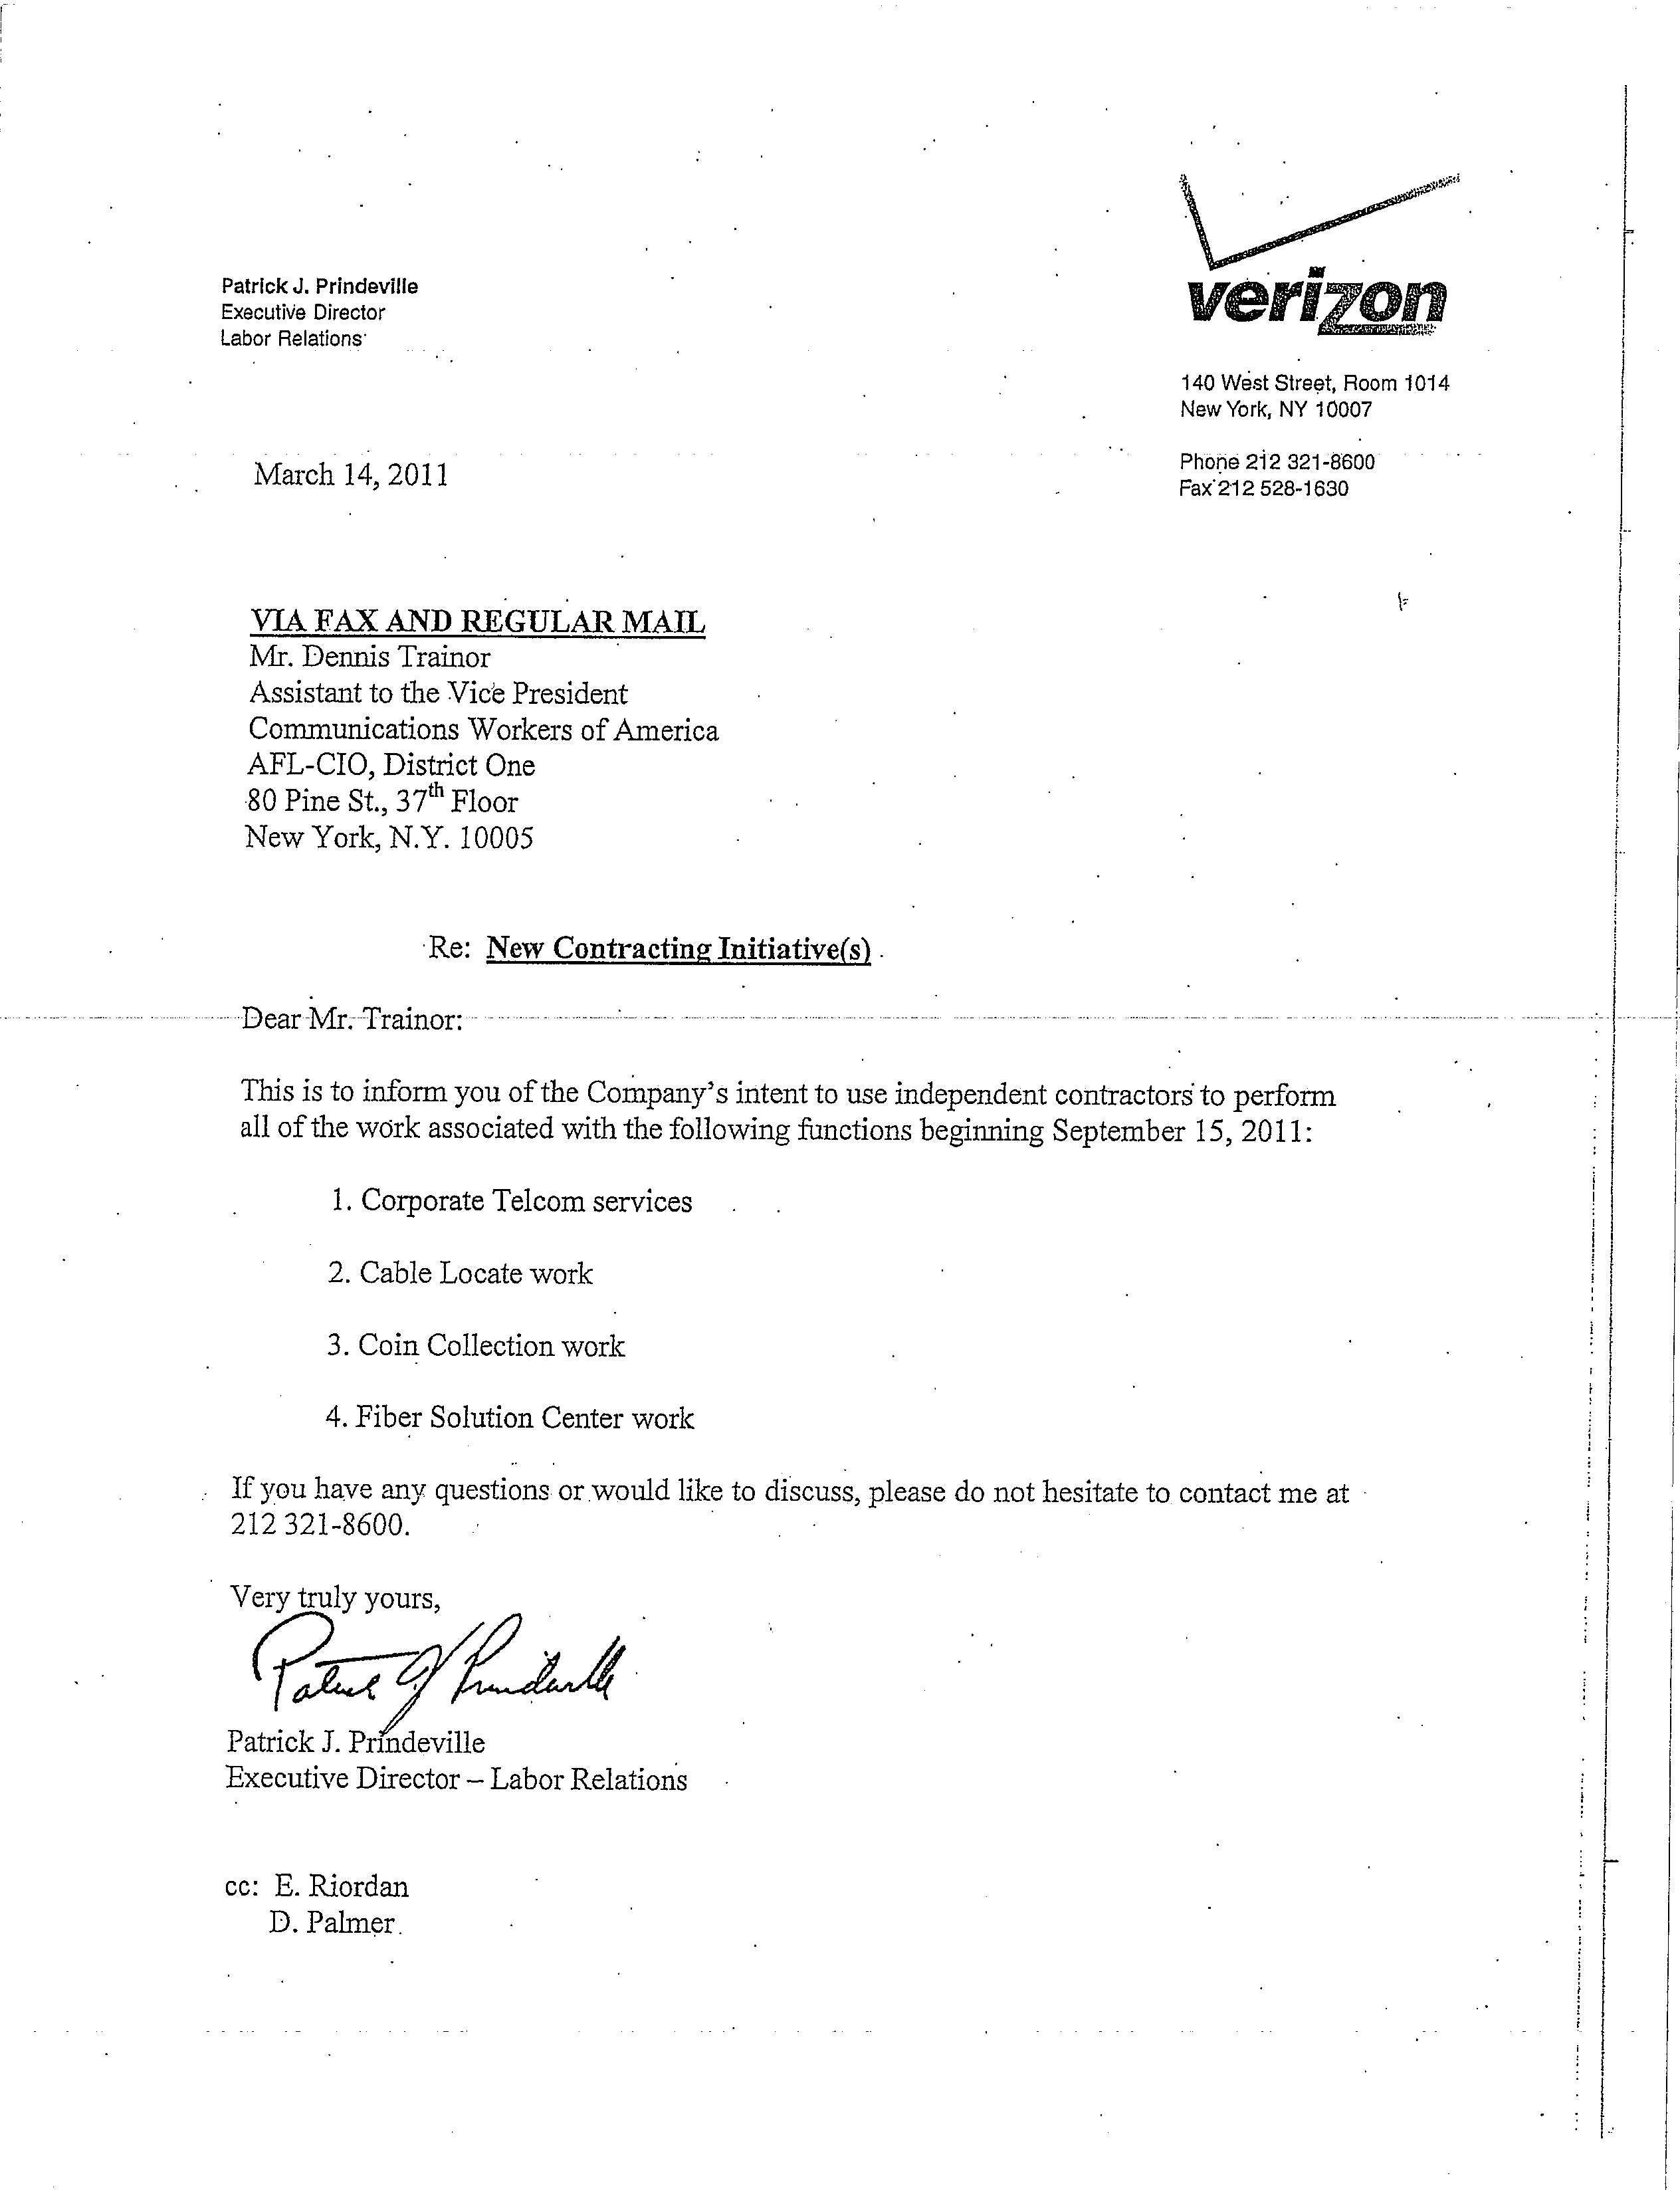 """Verizon Plans To Use Contractors """"To Do Our Work"""" 